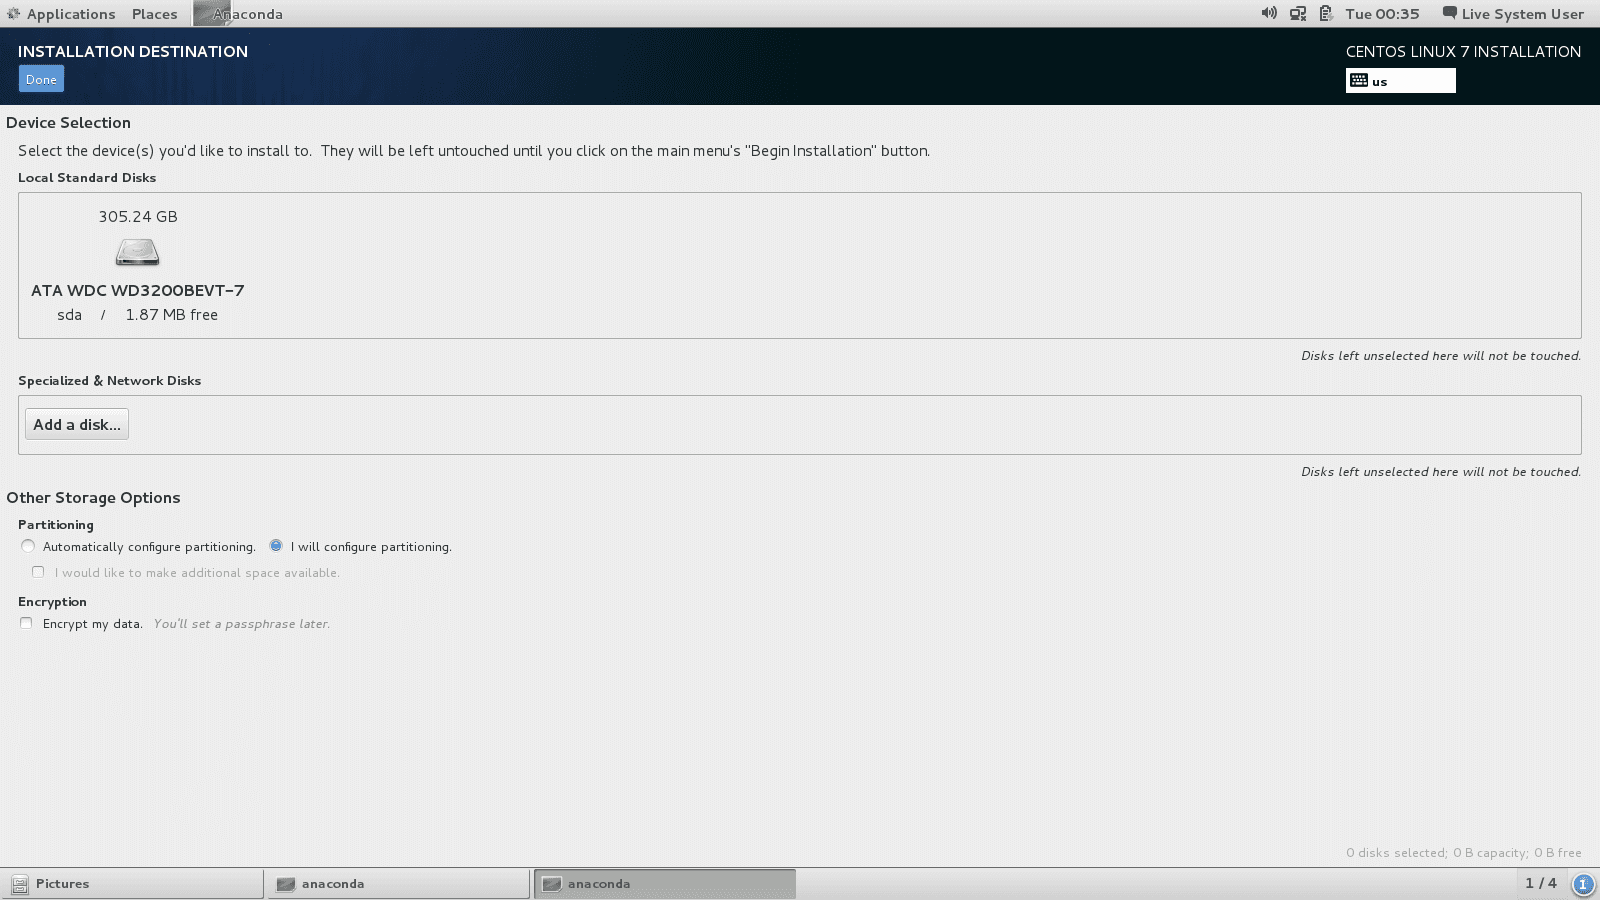 How to Install CentOS 7 Step by Step with Screenshots